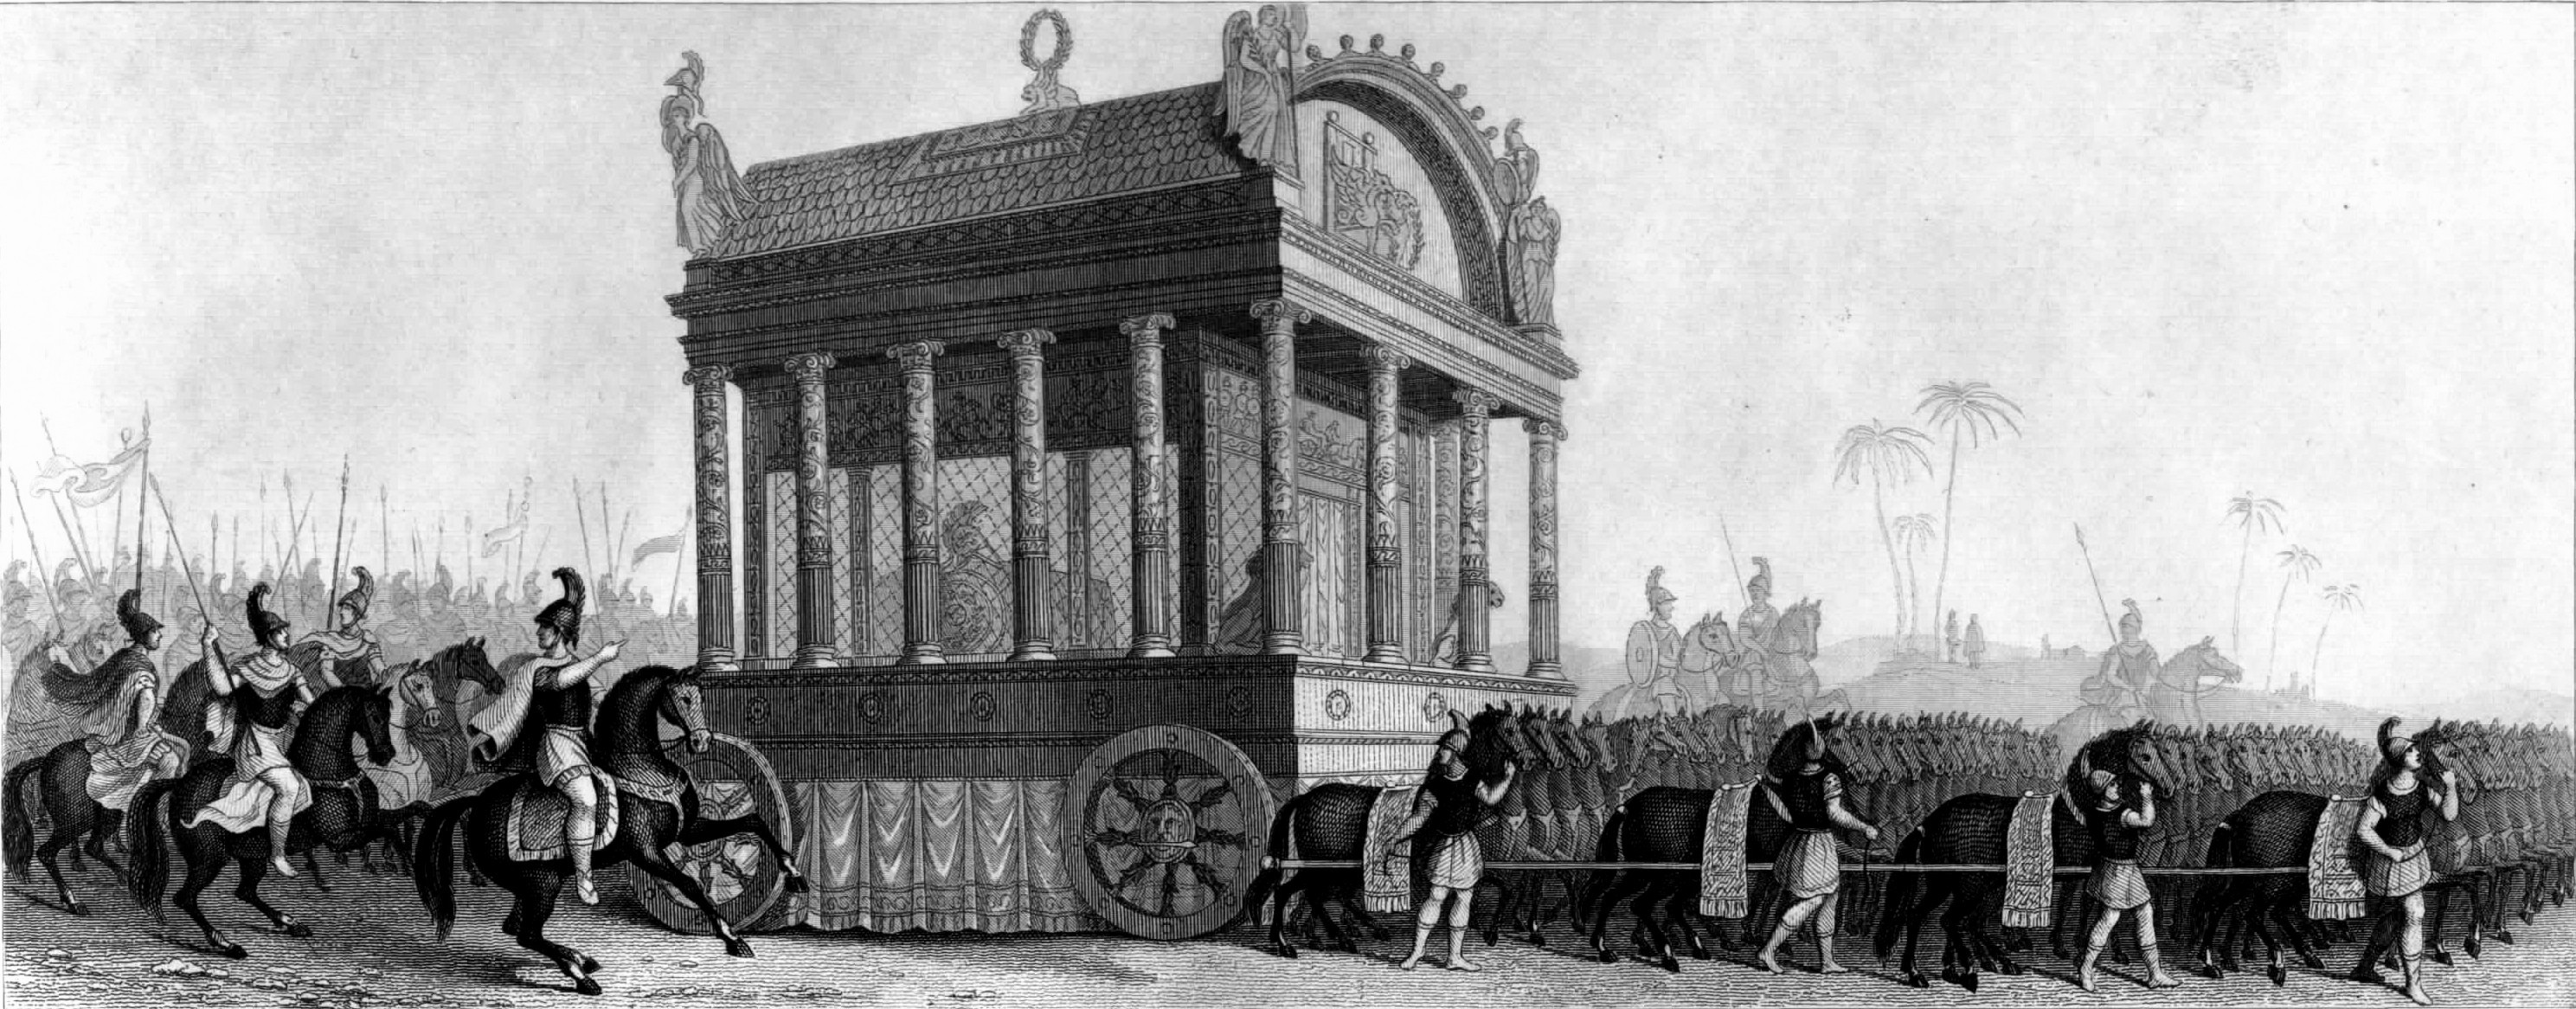 https://upload.wikimedia.org/wikipedia/commons/1/1f/Mid-nineteenth_century_reconstruction_of_Alexander%27s_catafalque_based_on_the_description_by_Diodorus.jpg